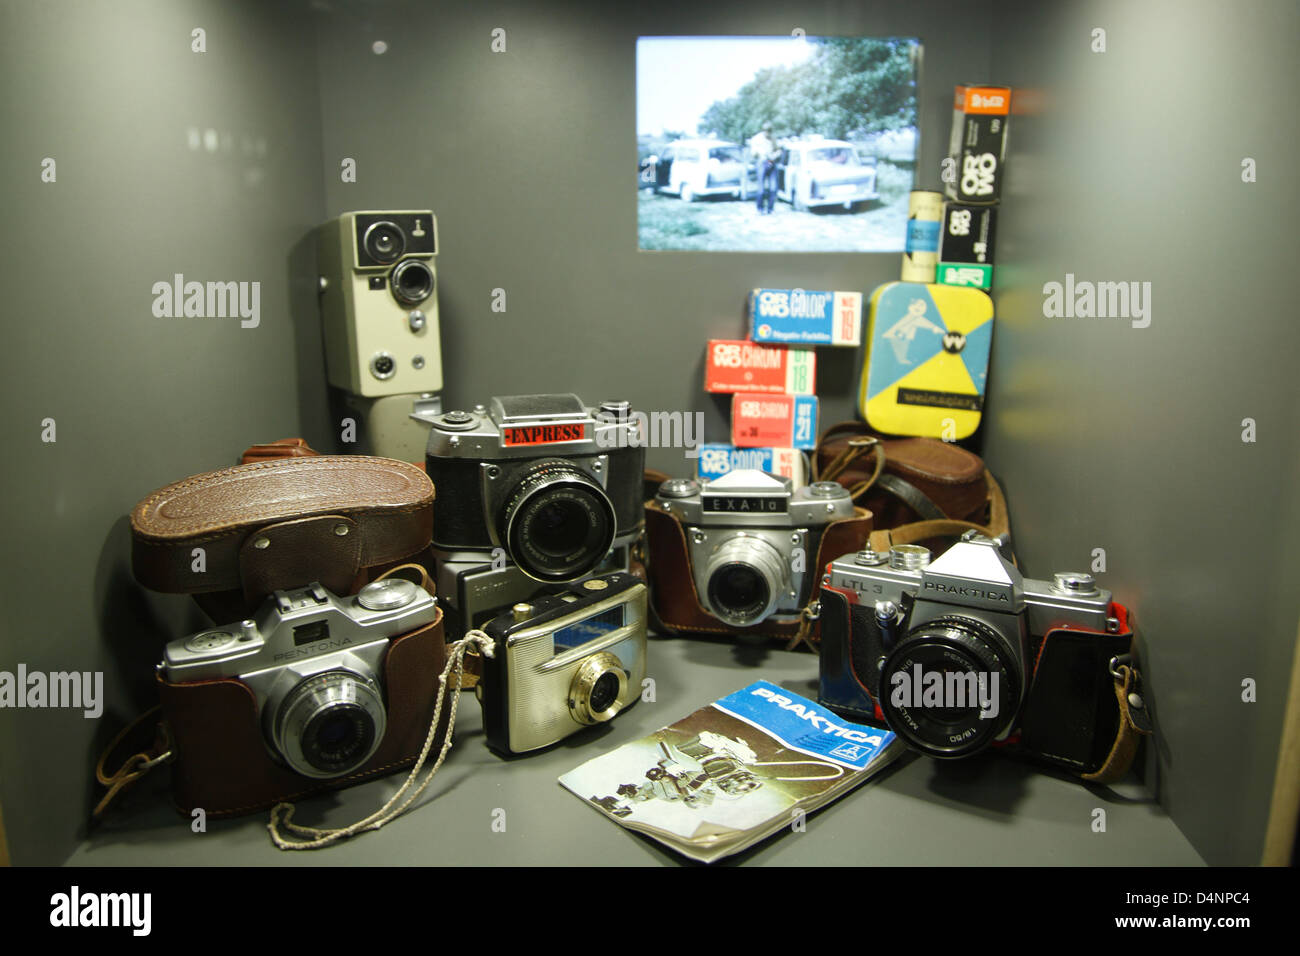 DDR-Museum at the Spree, Cameras from DDR produktion,  Berlin, Germany - Stock Image